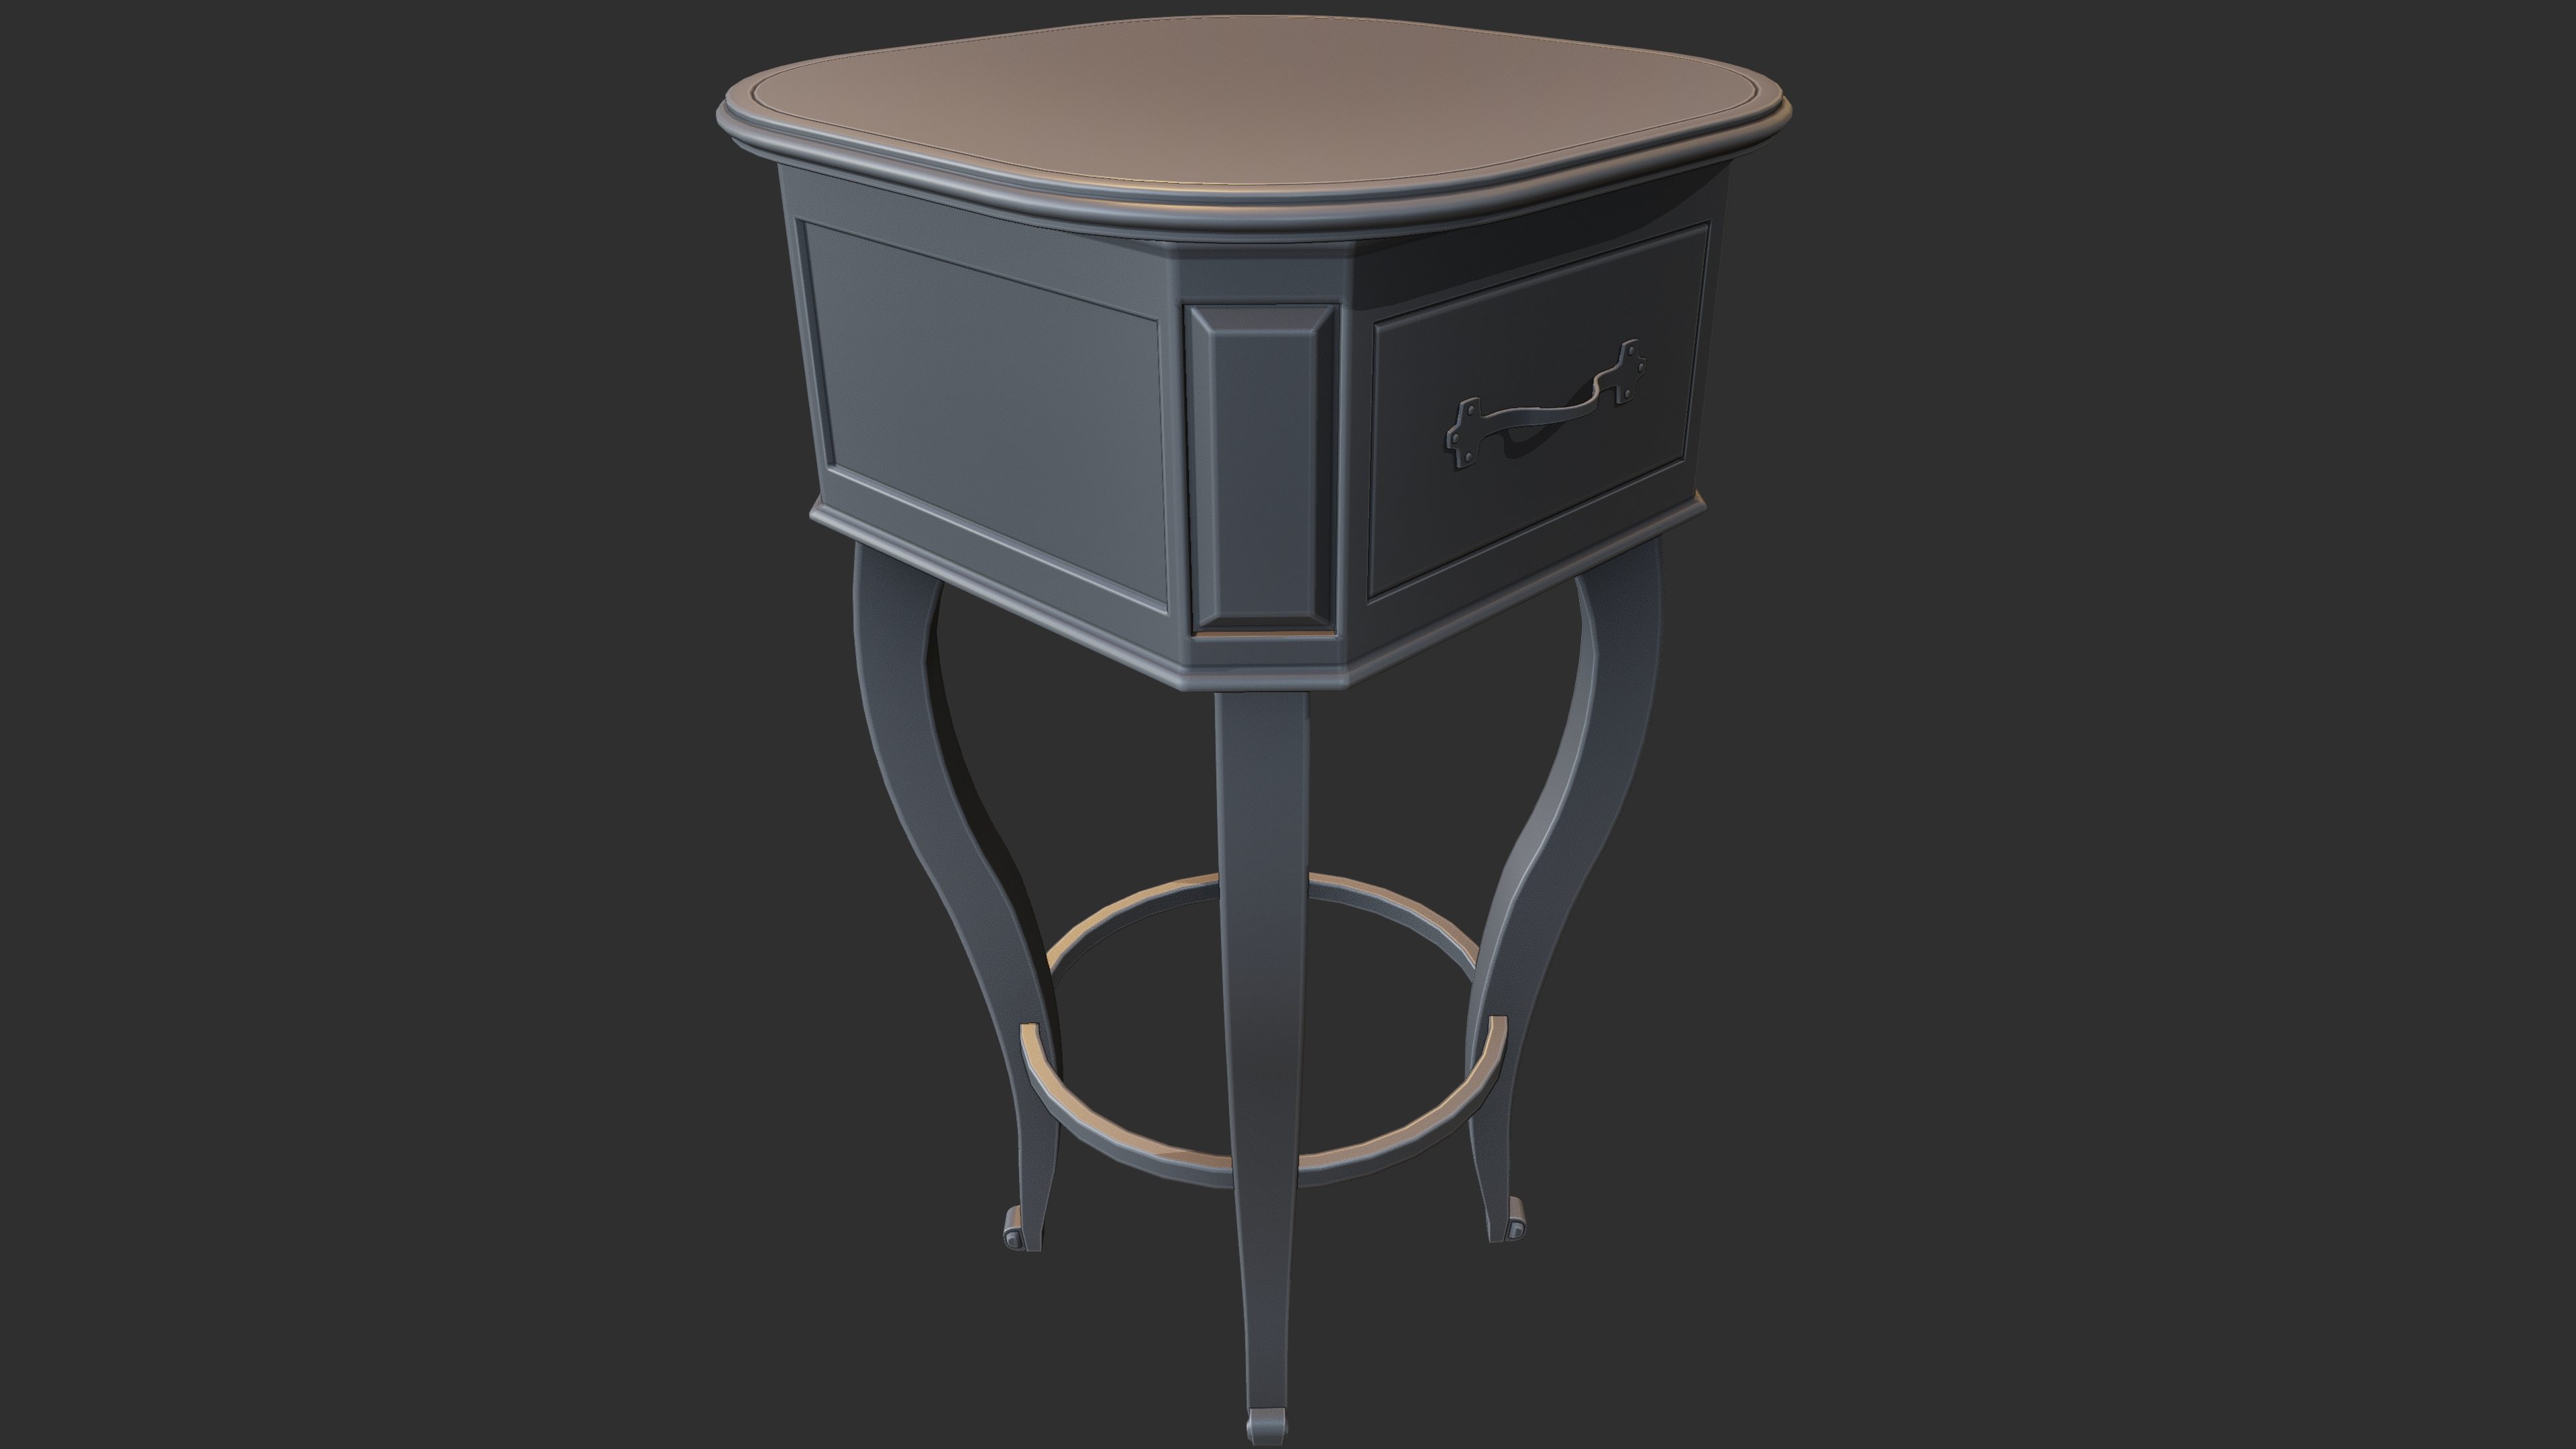 Stewarts Antique French Table preview image 2